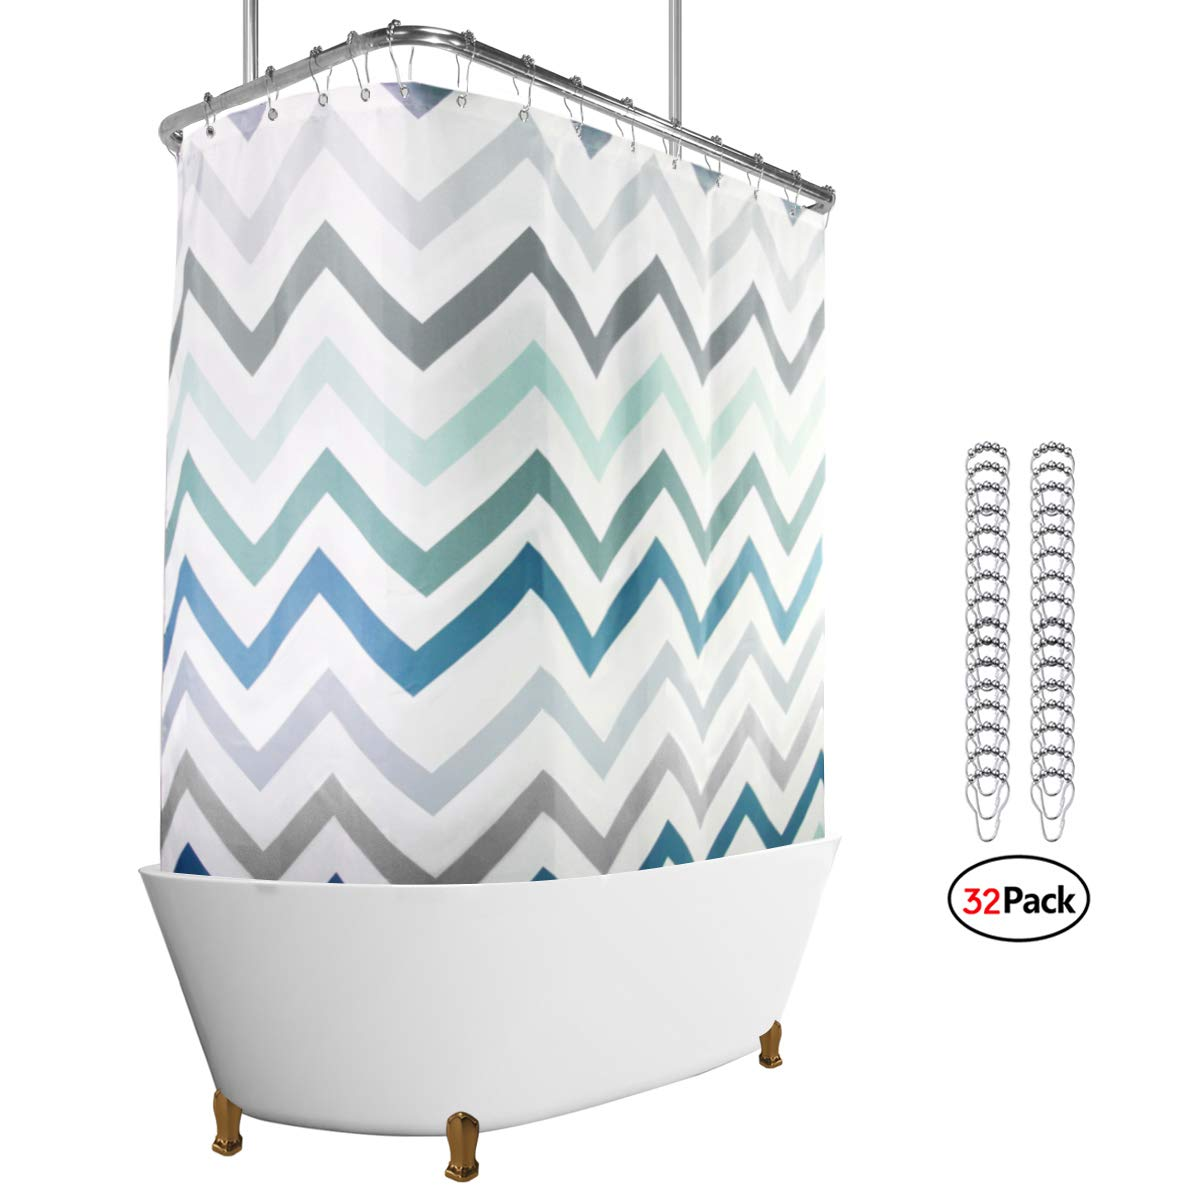 Riyidecor Clawfoot Tub Shower Curtain Panel 180x70 Inch All Wrap Around Polyester Fabric Set Chevron Extra Wide Waterproof with 32 Pack Metal Shower Hooks